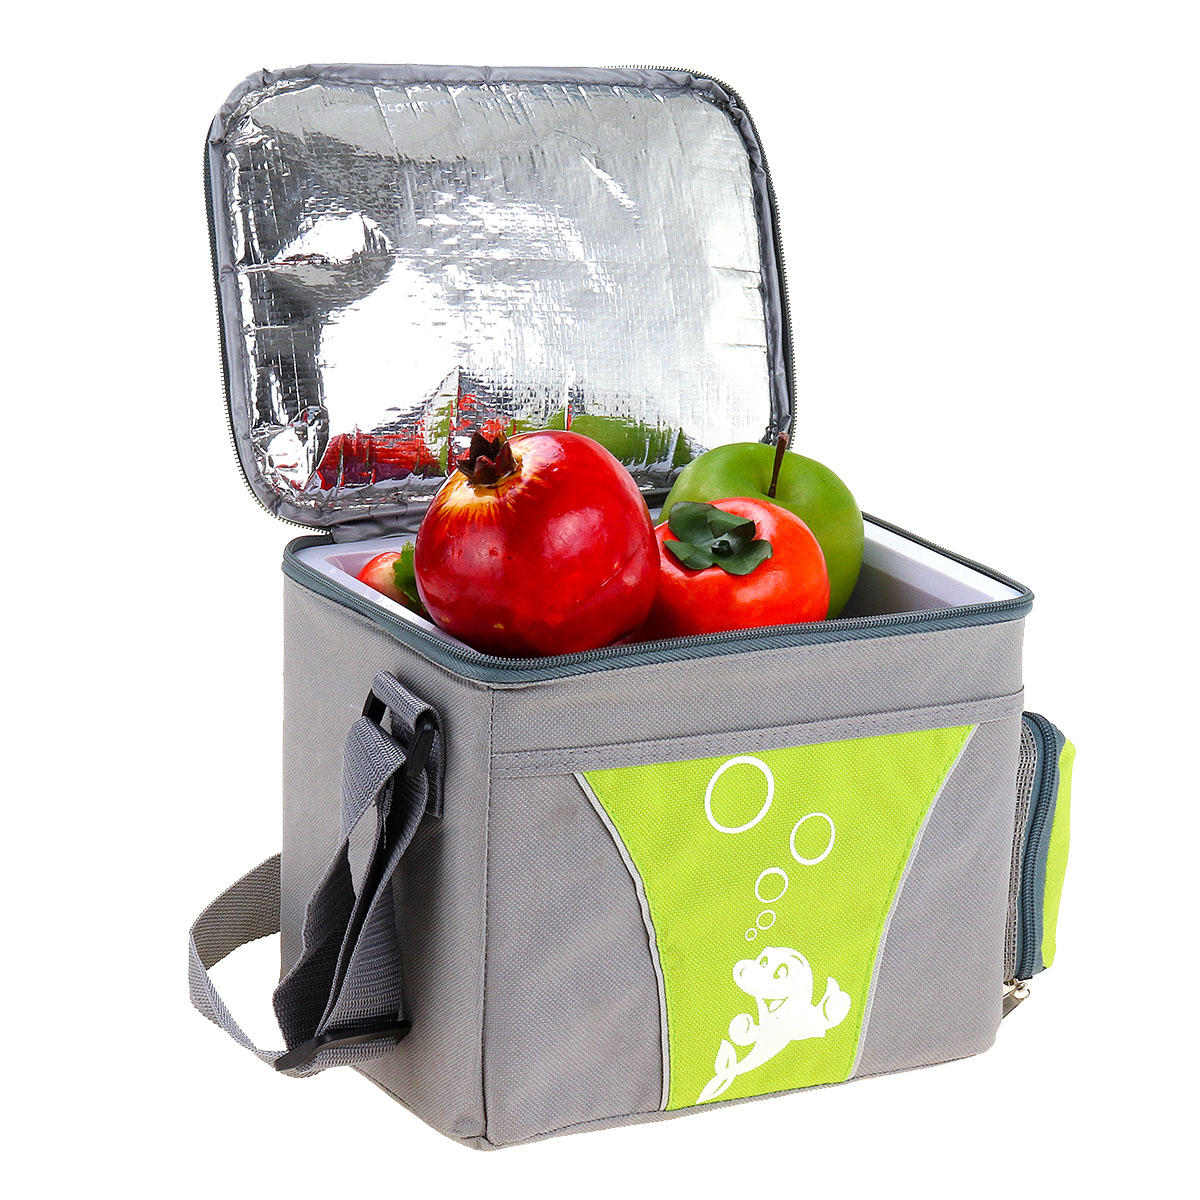 12V 6L Mini Car Refrigerator 2 In 1 Less Noise Car Cooling Heating Box Fridge for Cars Home Camping